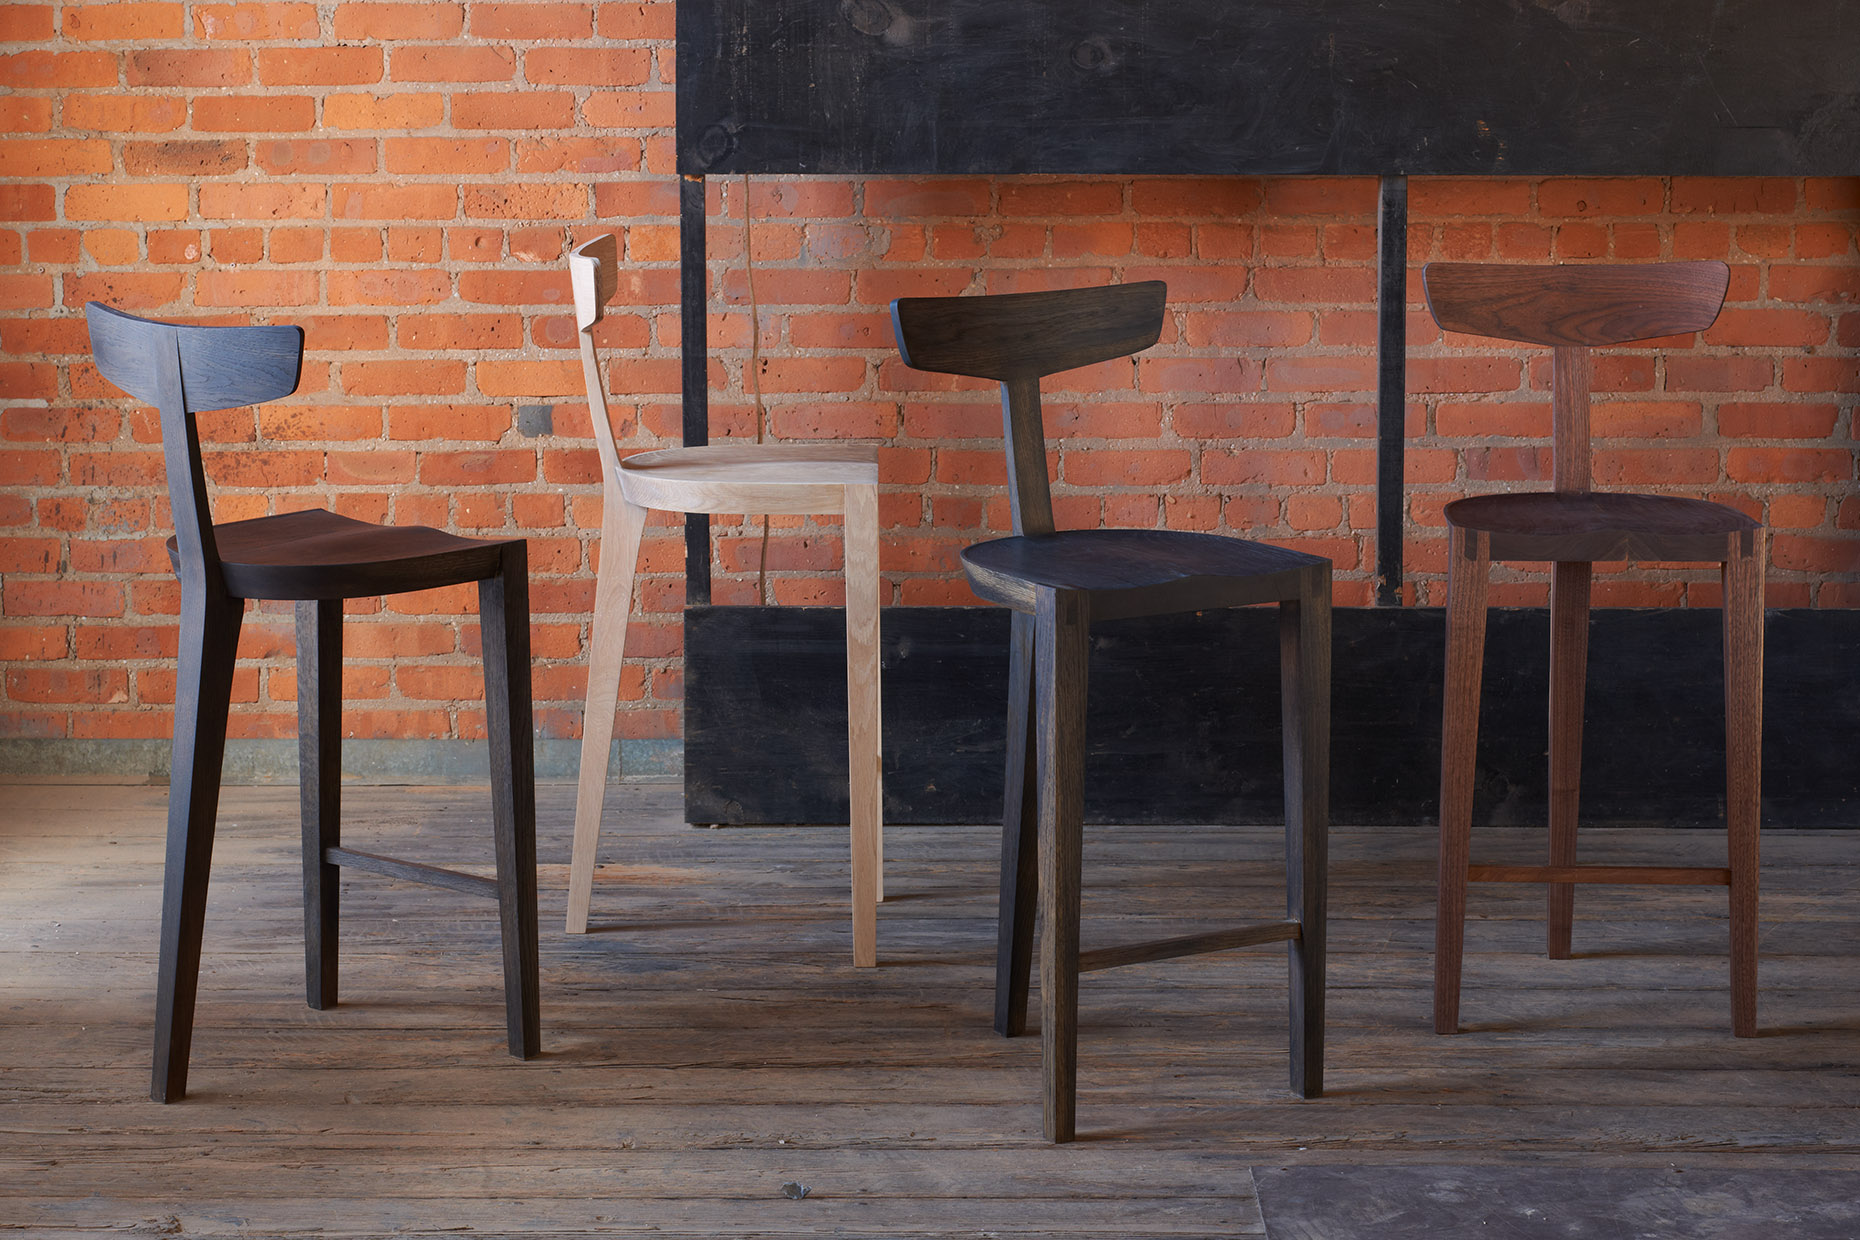 Saddleback Stools